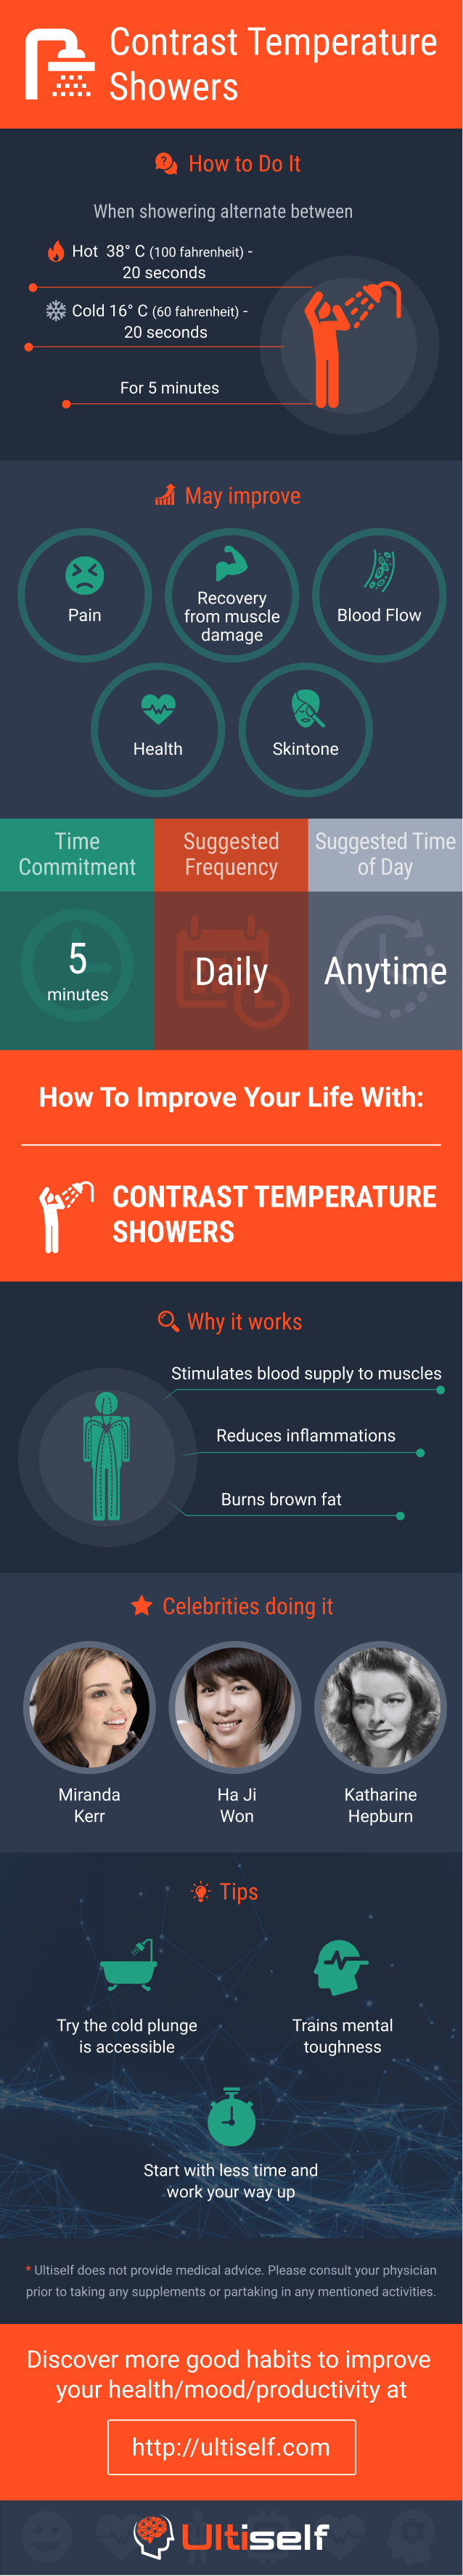 Contrast Temperature Showers infographic